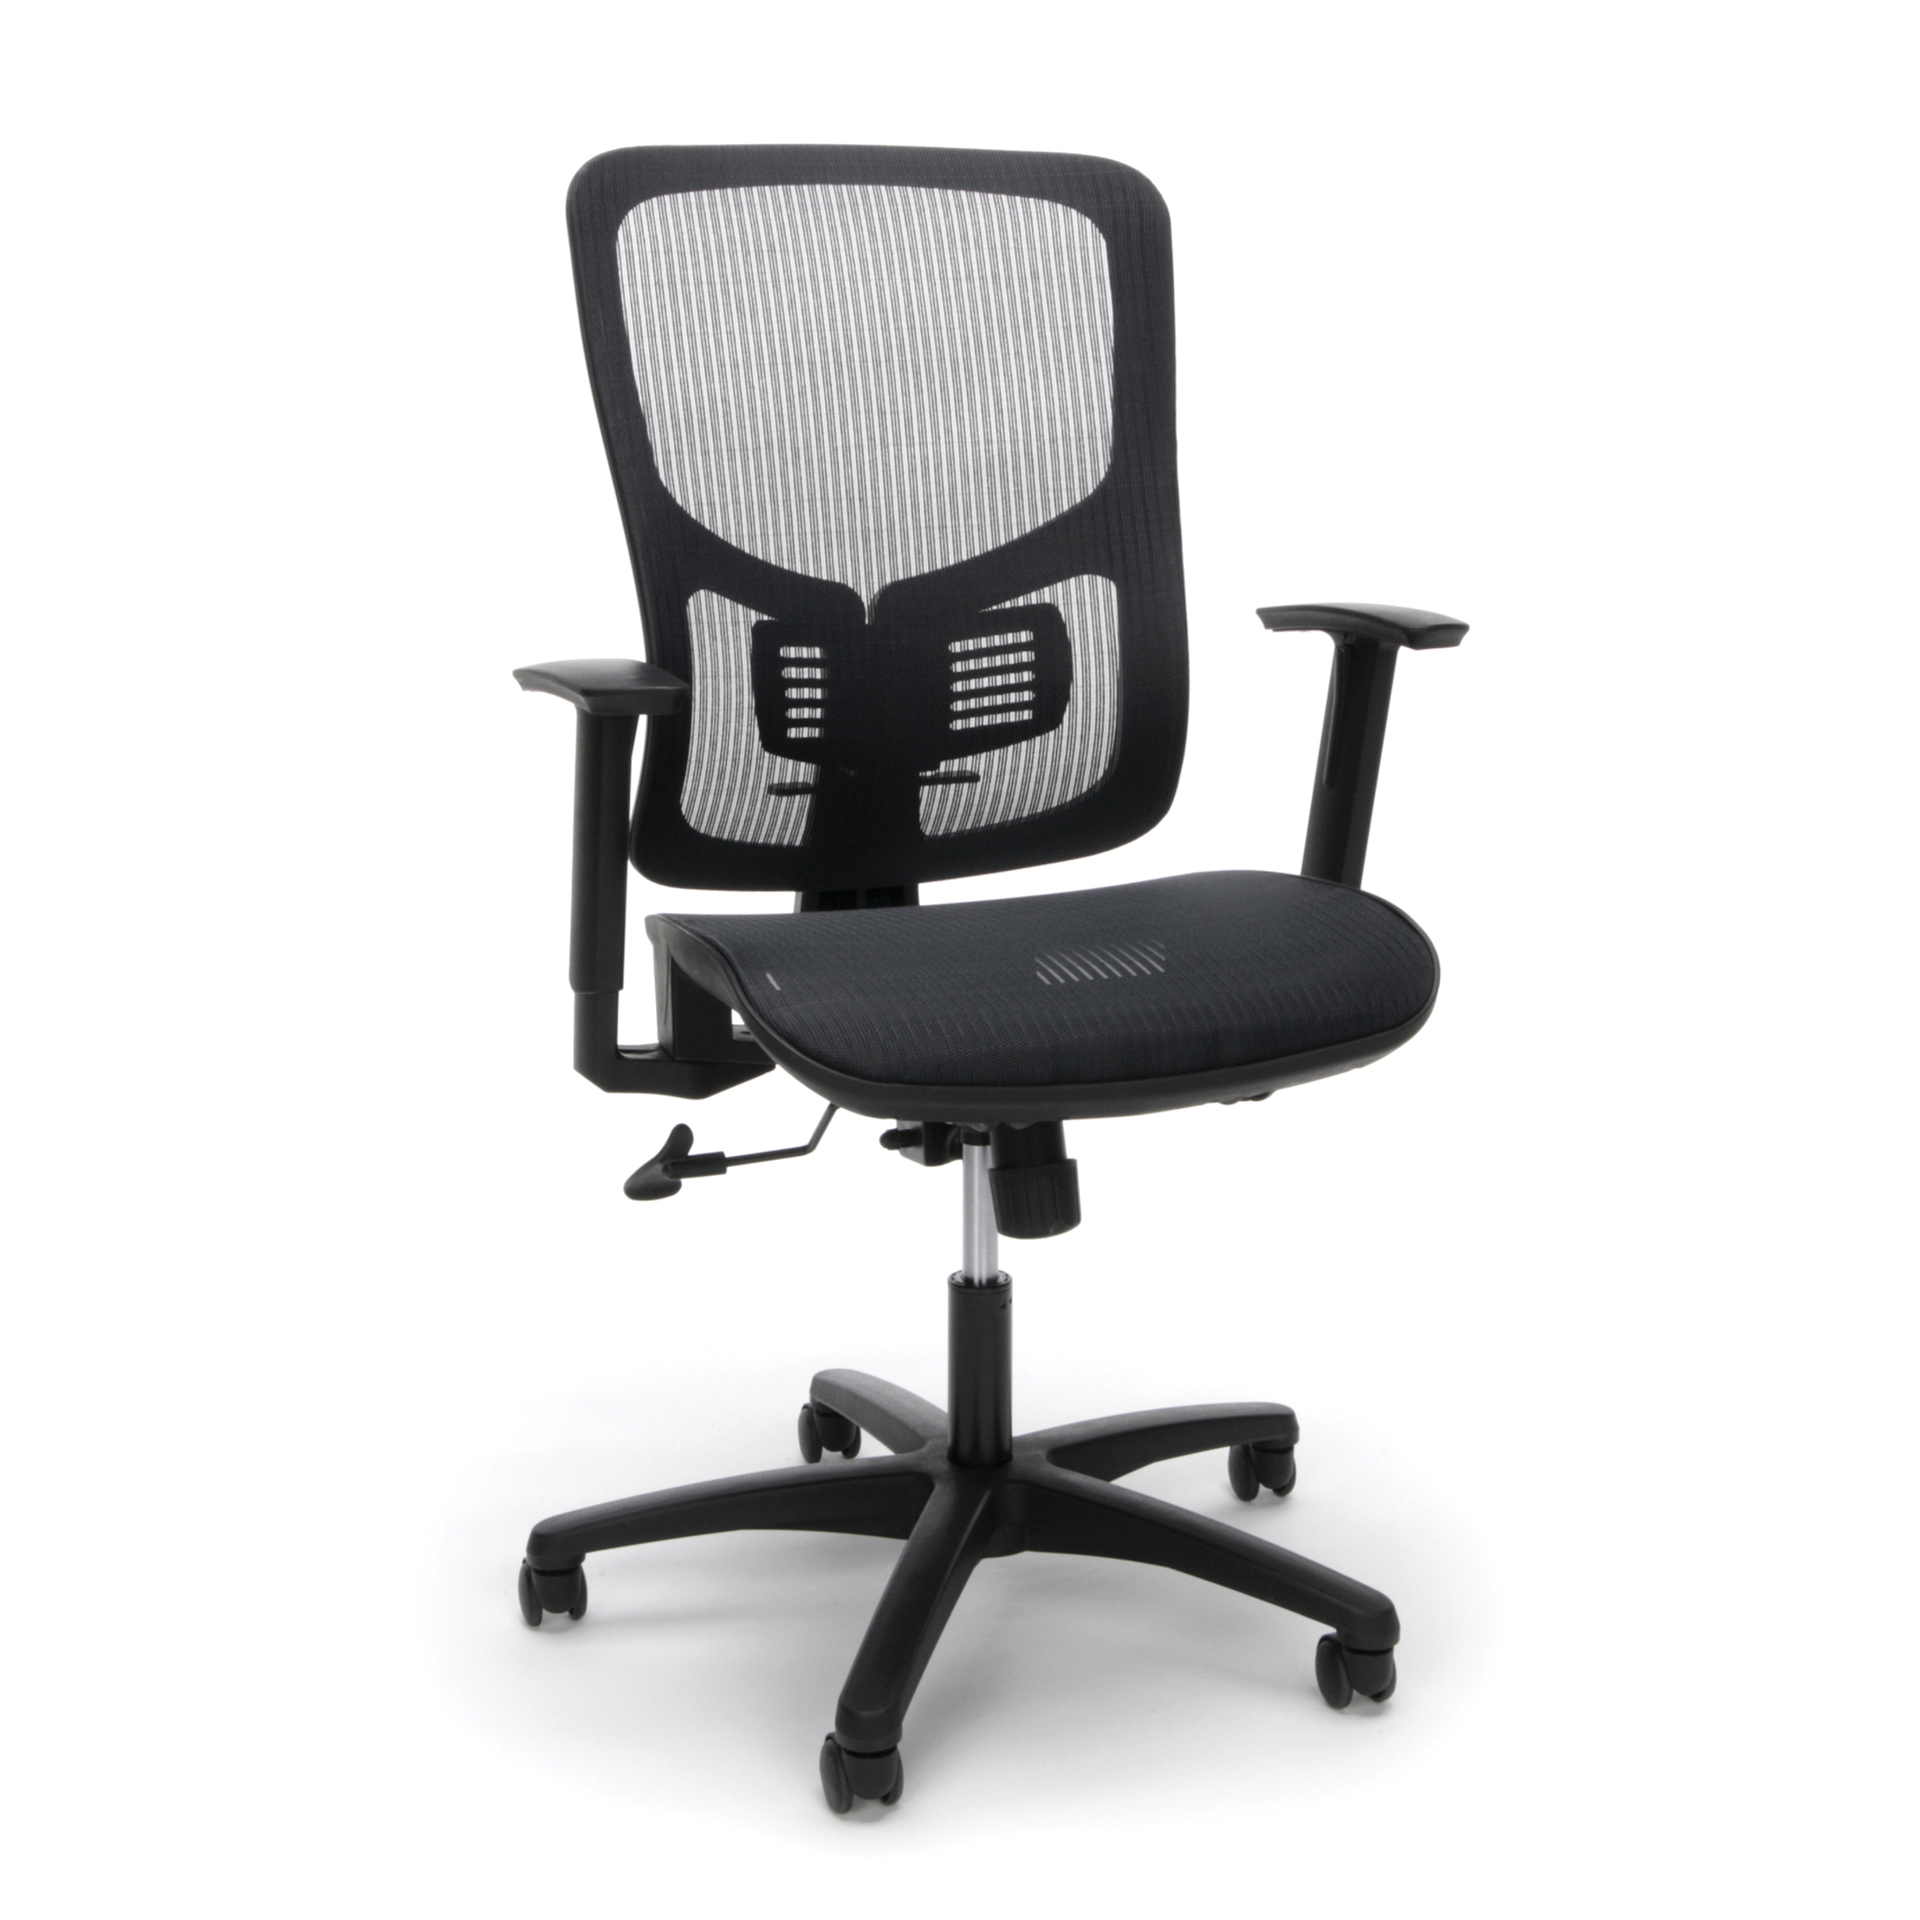 OFM Essentials Ergonomic Office Chair Black - Office Depot